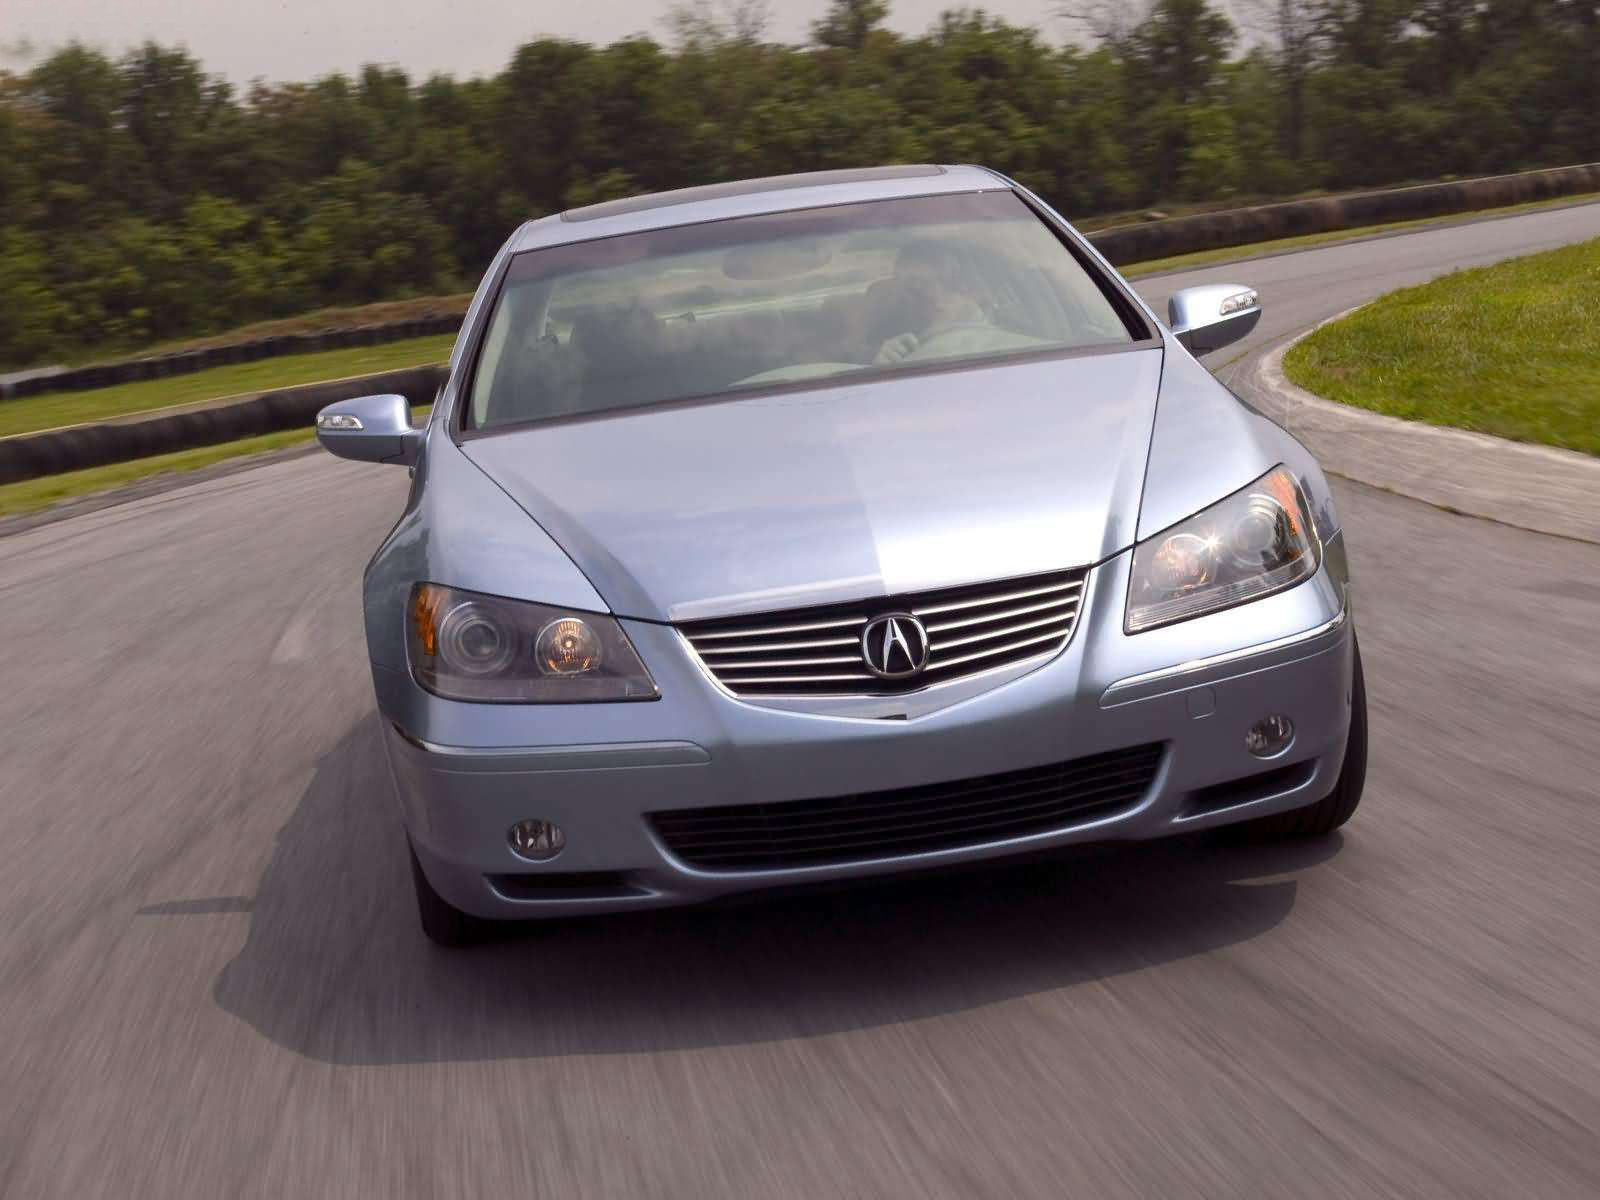 acura photo rl and amazing the pictures images review car look at